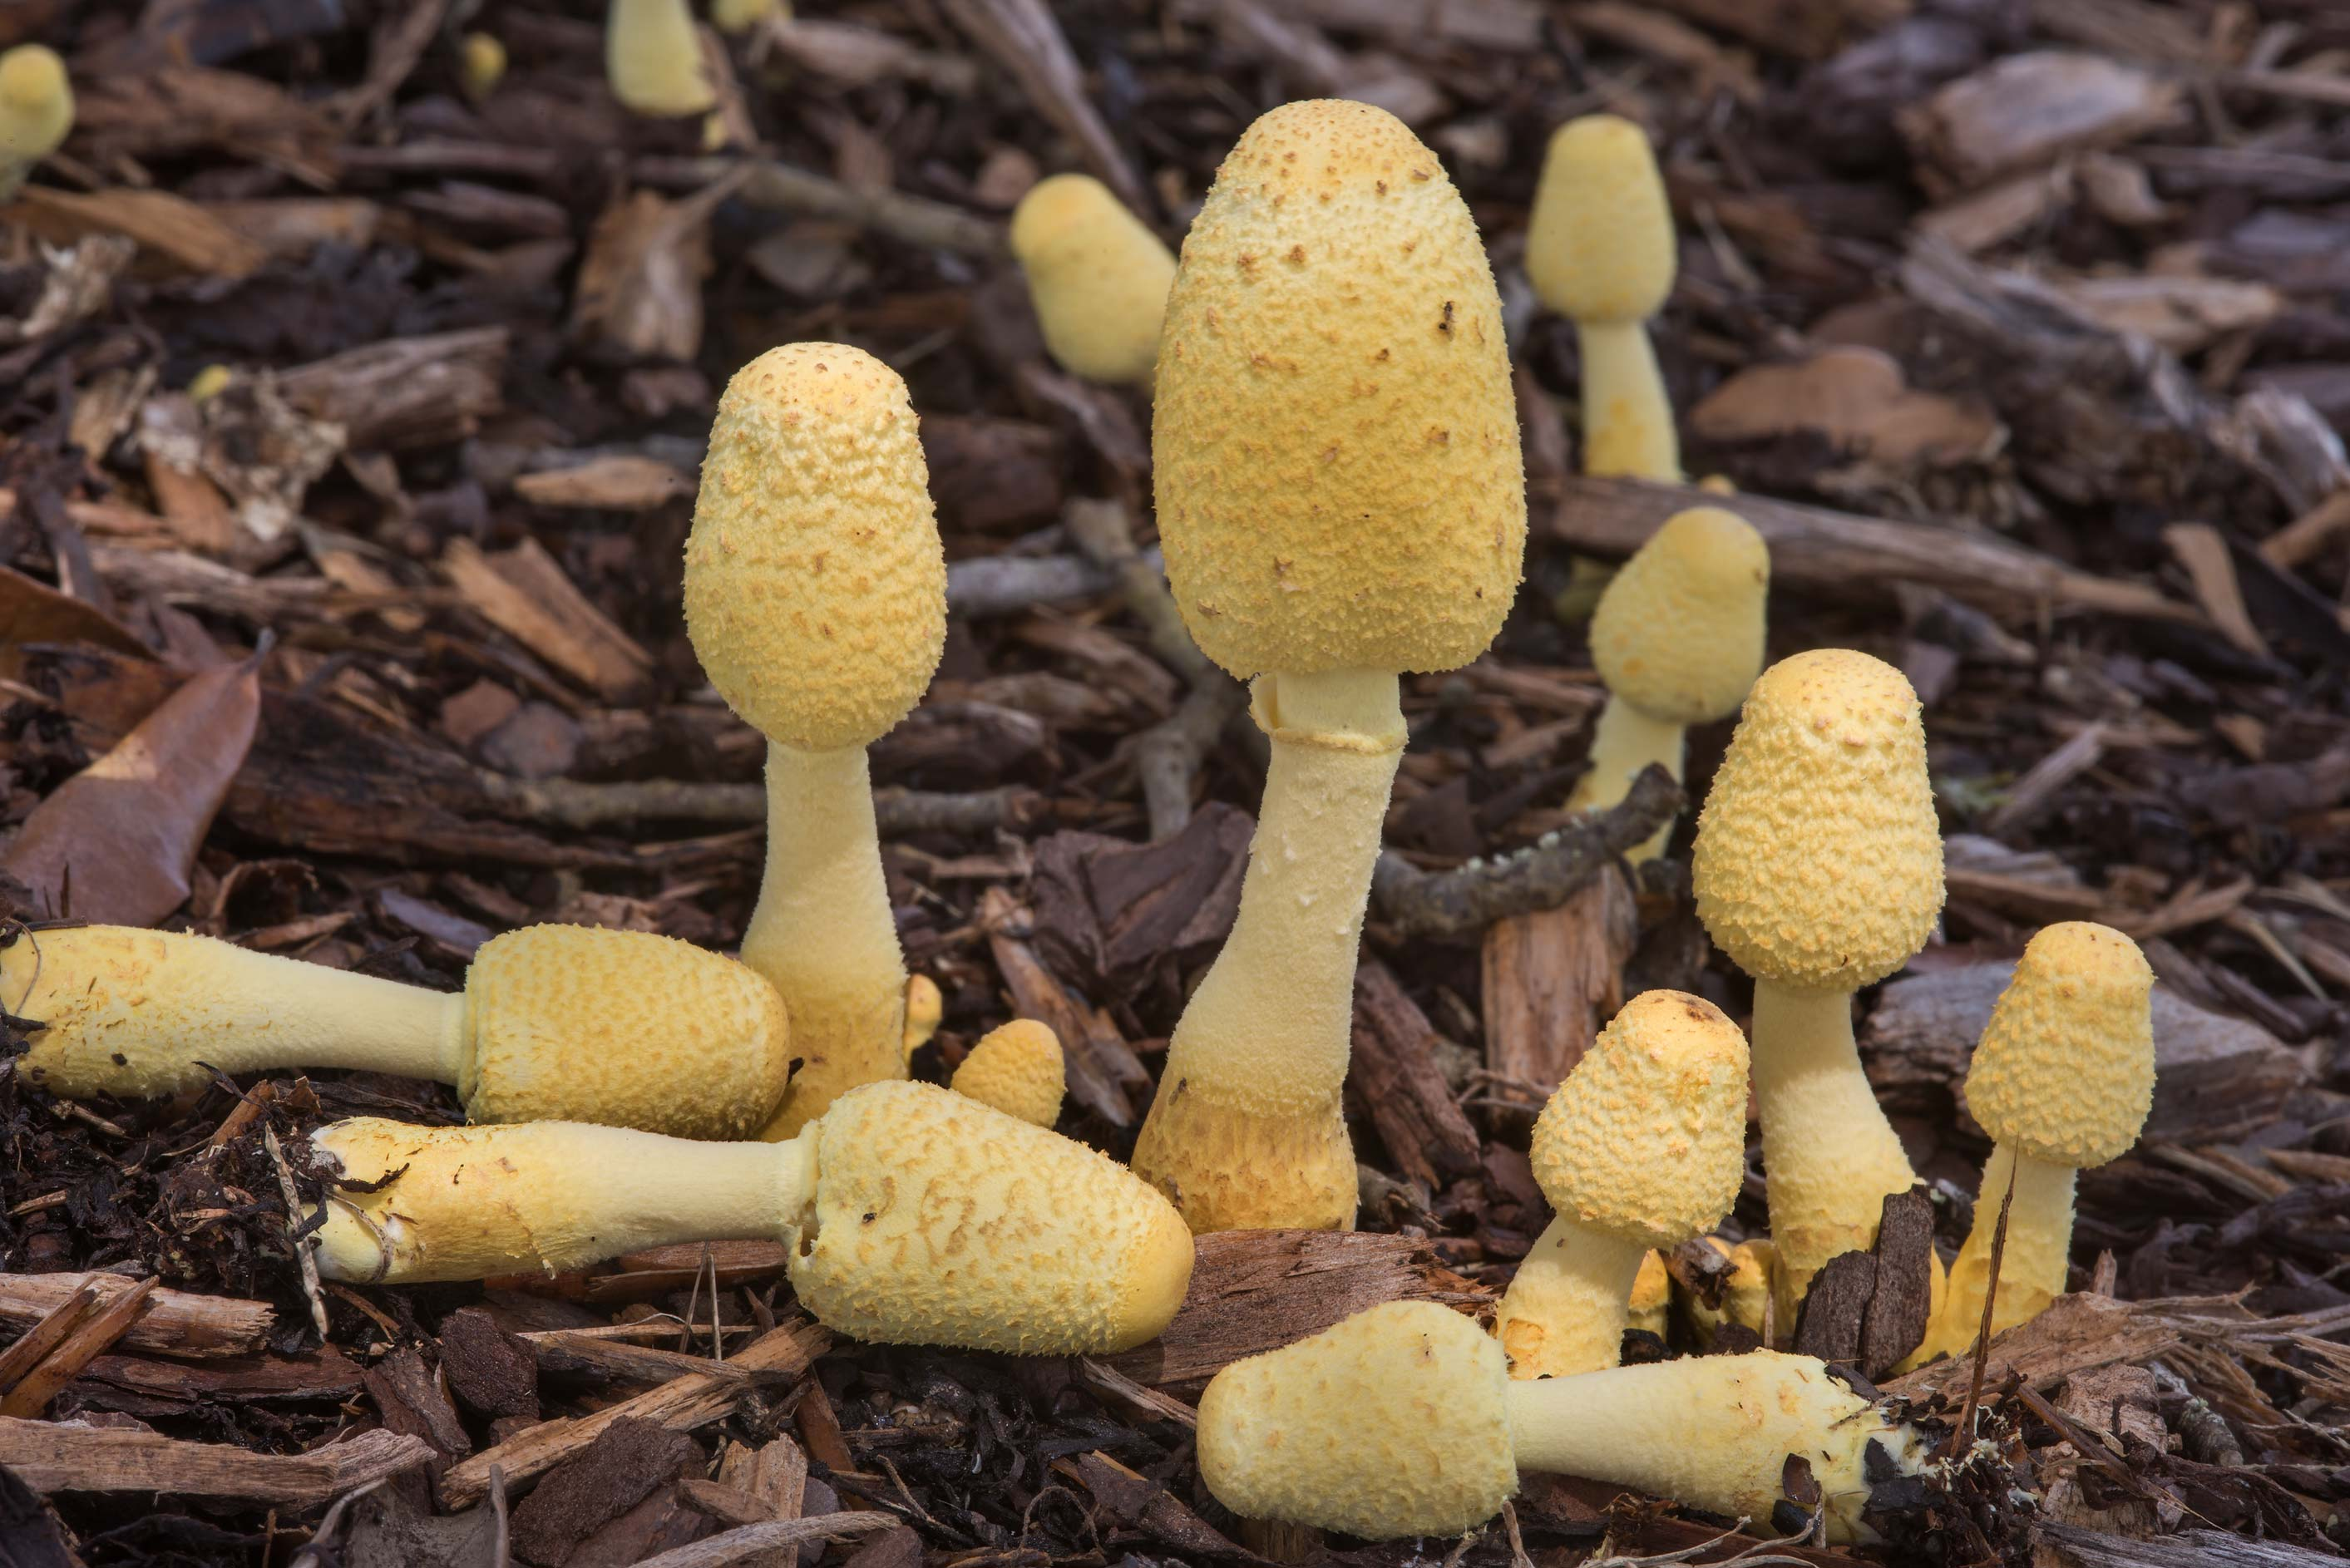 Yellow pot-plant mushrooms (Leucocoprinus...M University. College Station, Texas